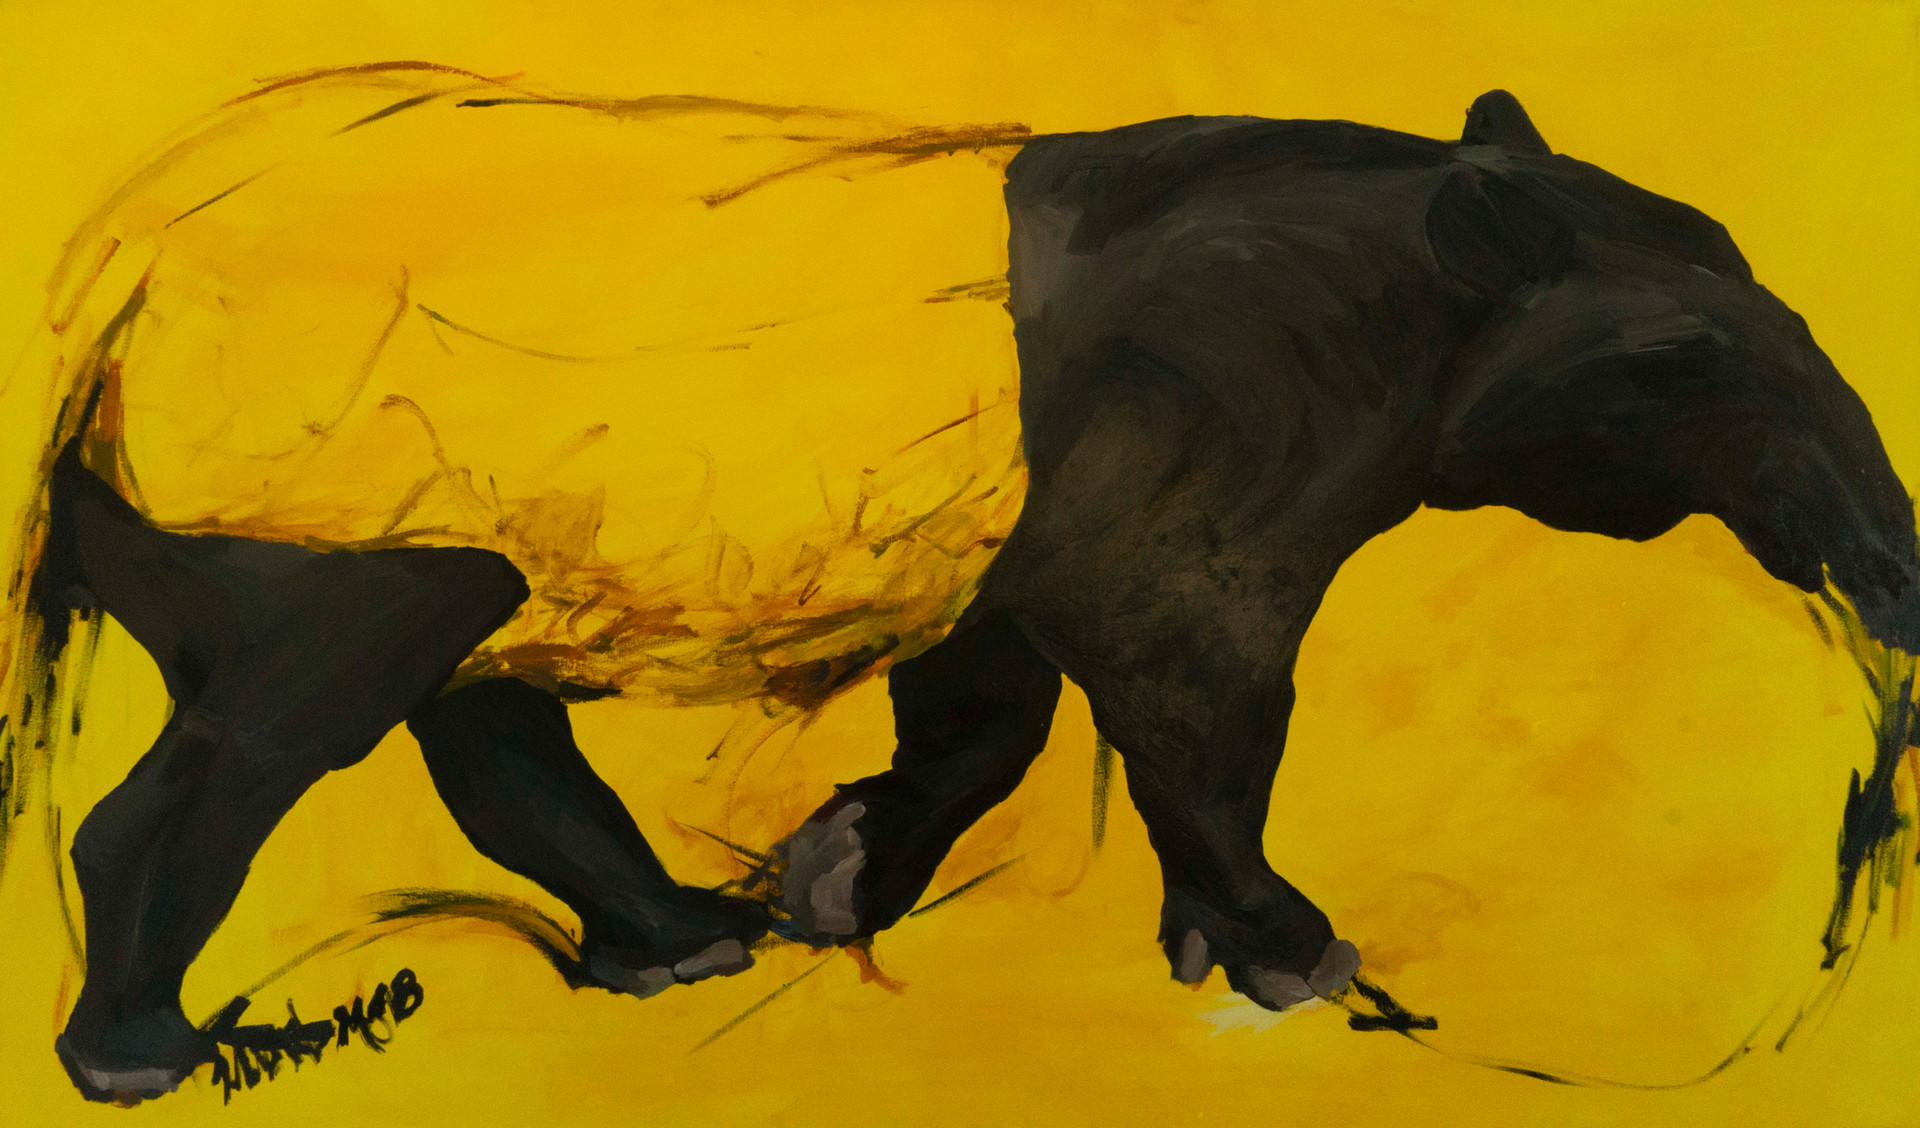 Sunshine tapir, oil and acrylic on canvas, 36x60, 2018